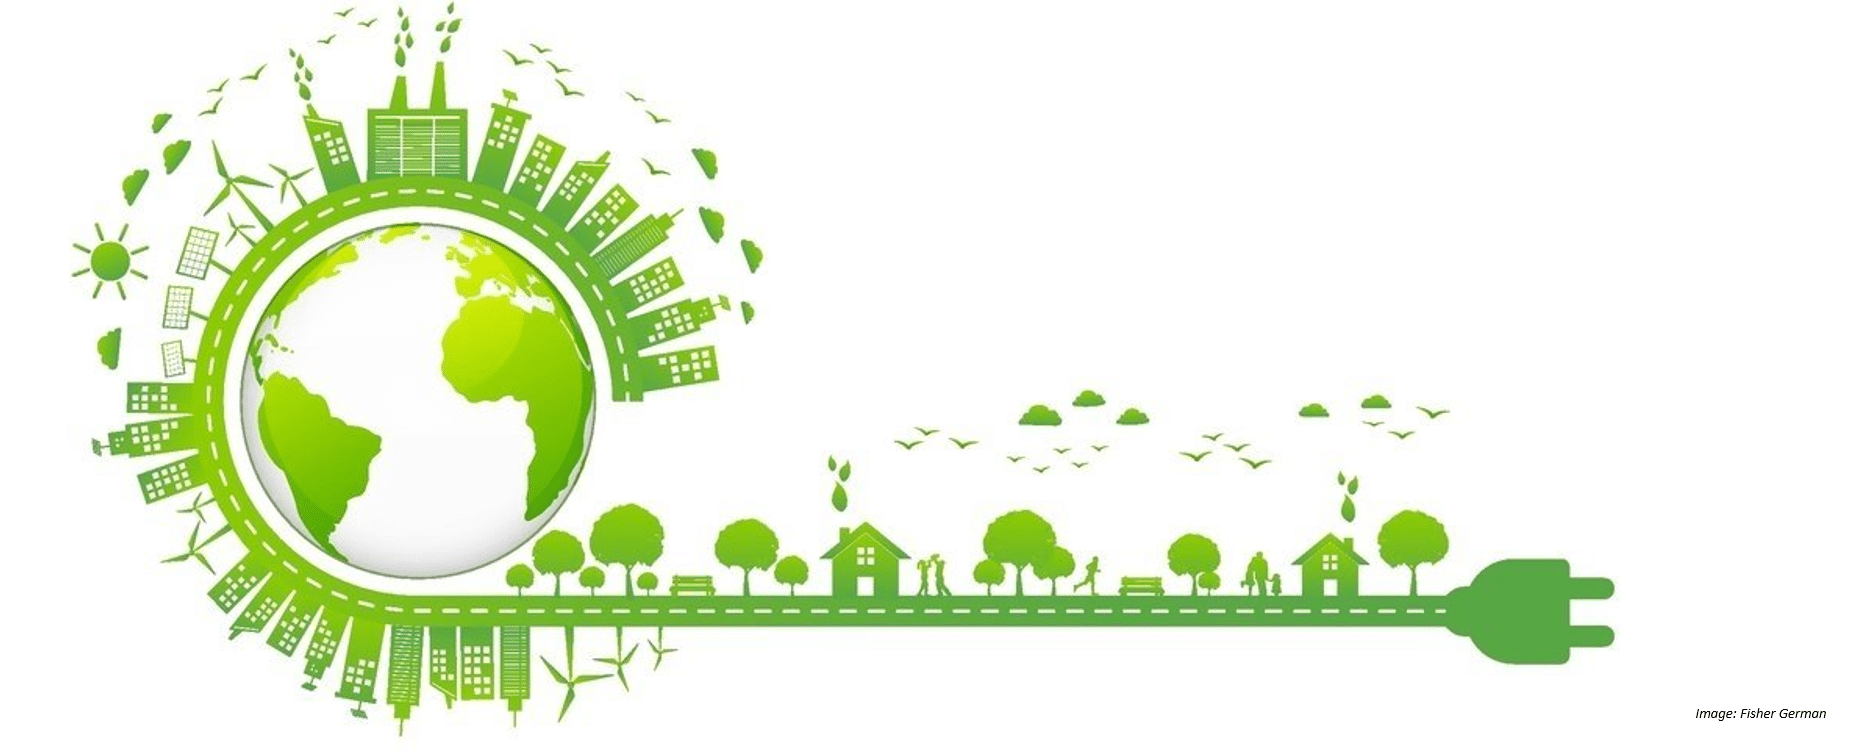 Don't Waste Services Net Zero Target Setting